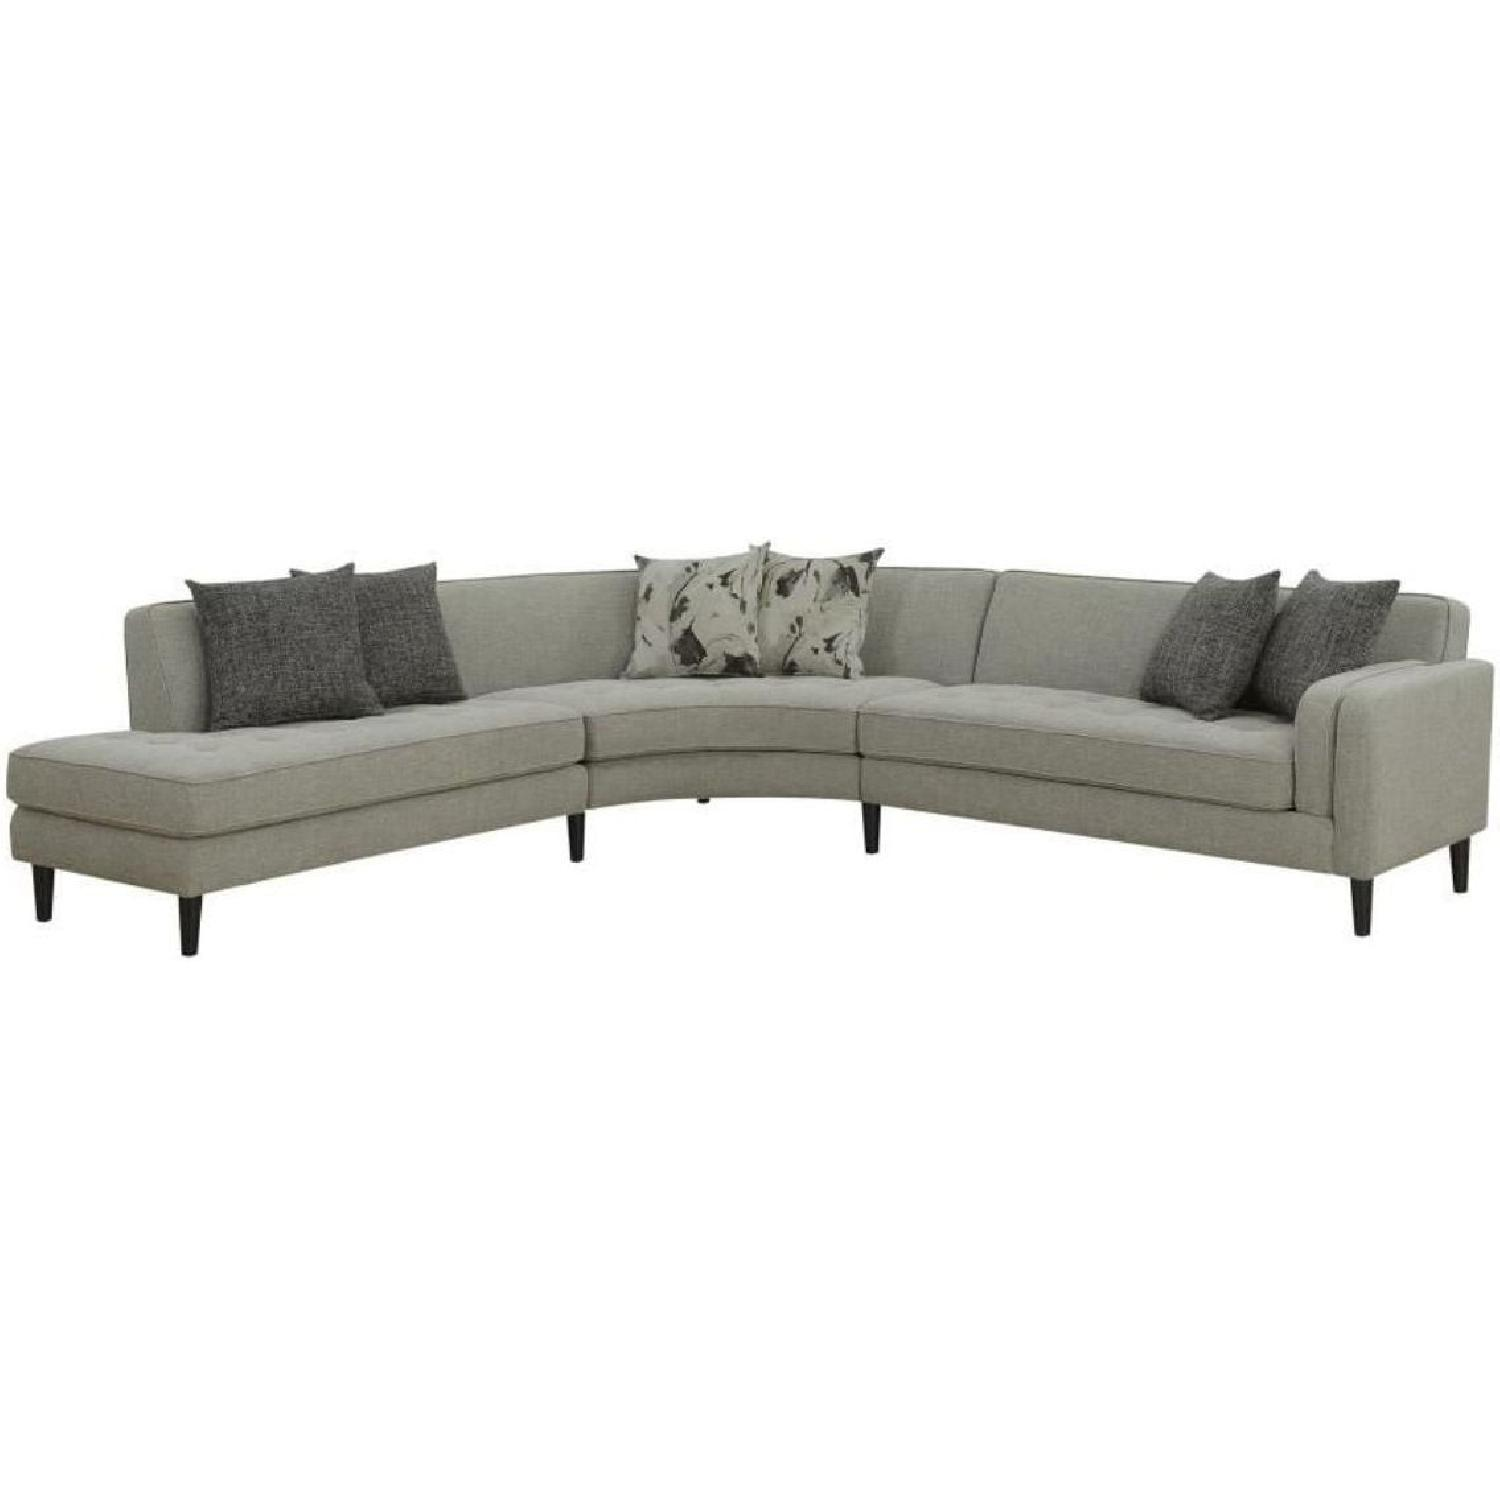 Mid Century Style Curved Sectional w/ Button Tufting